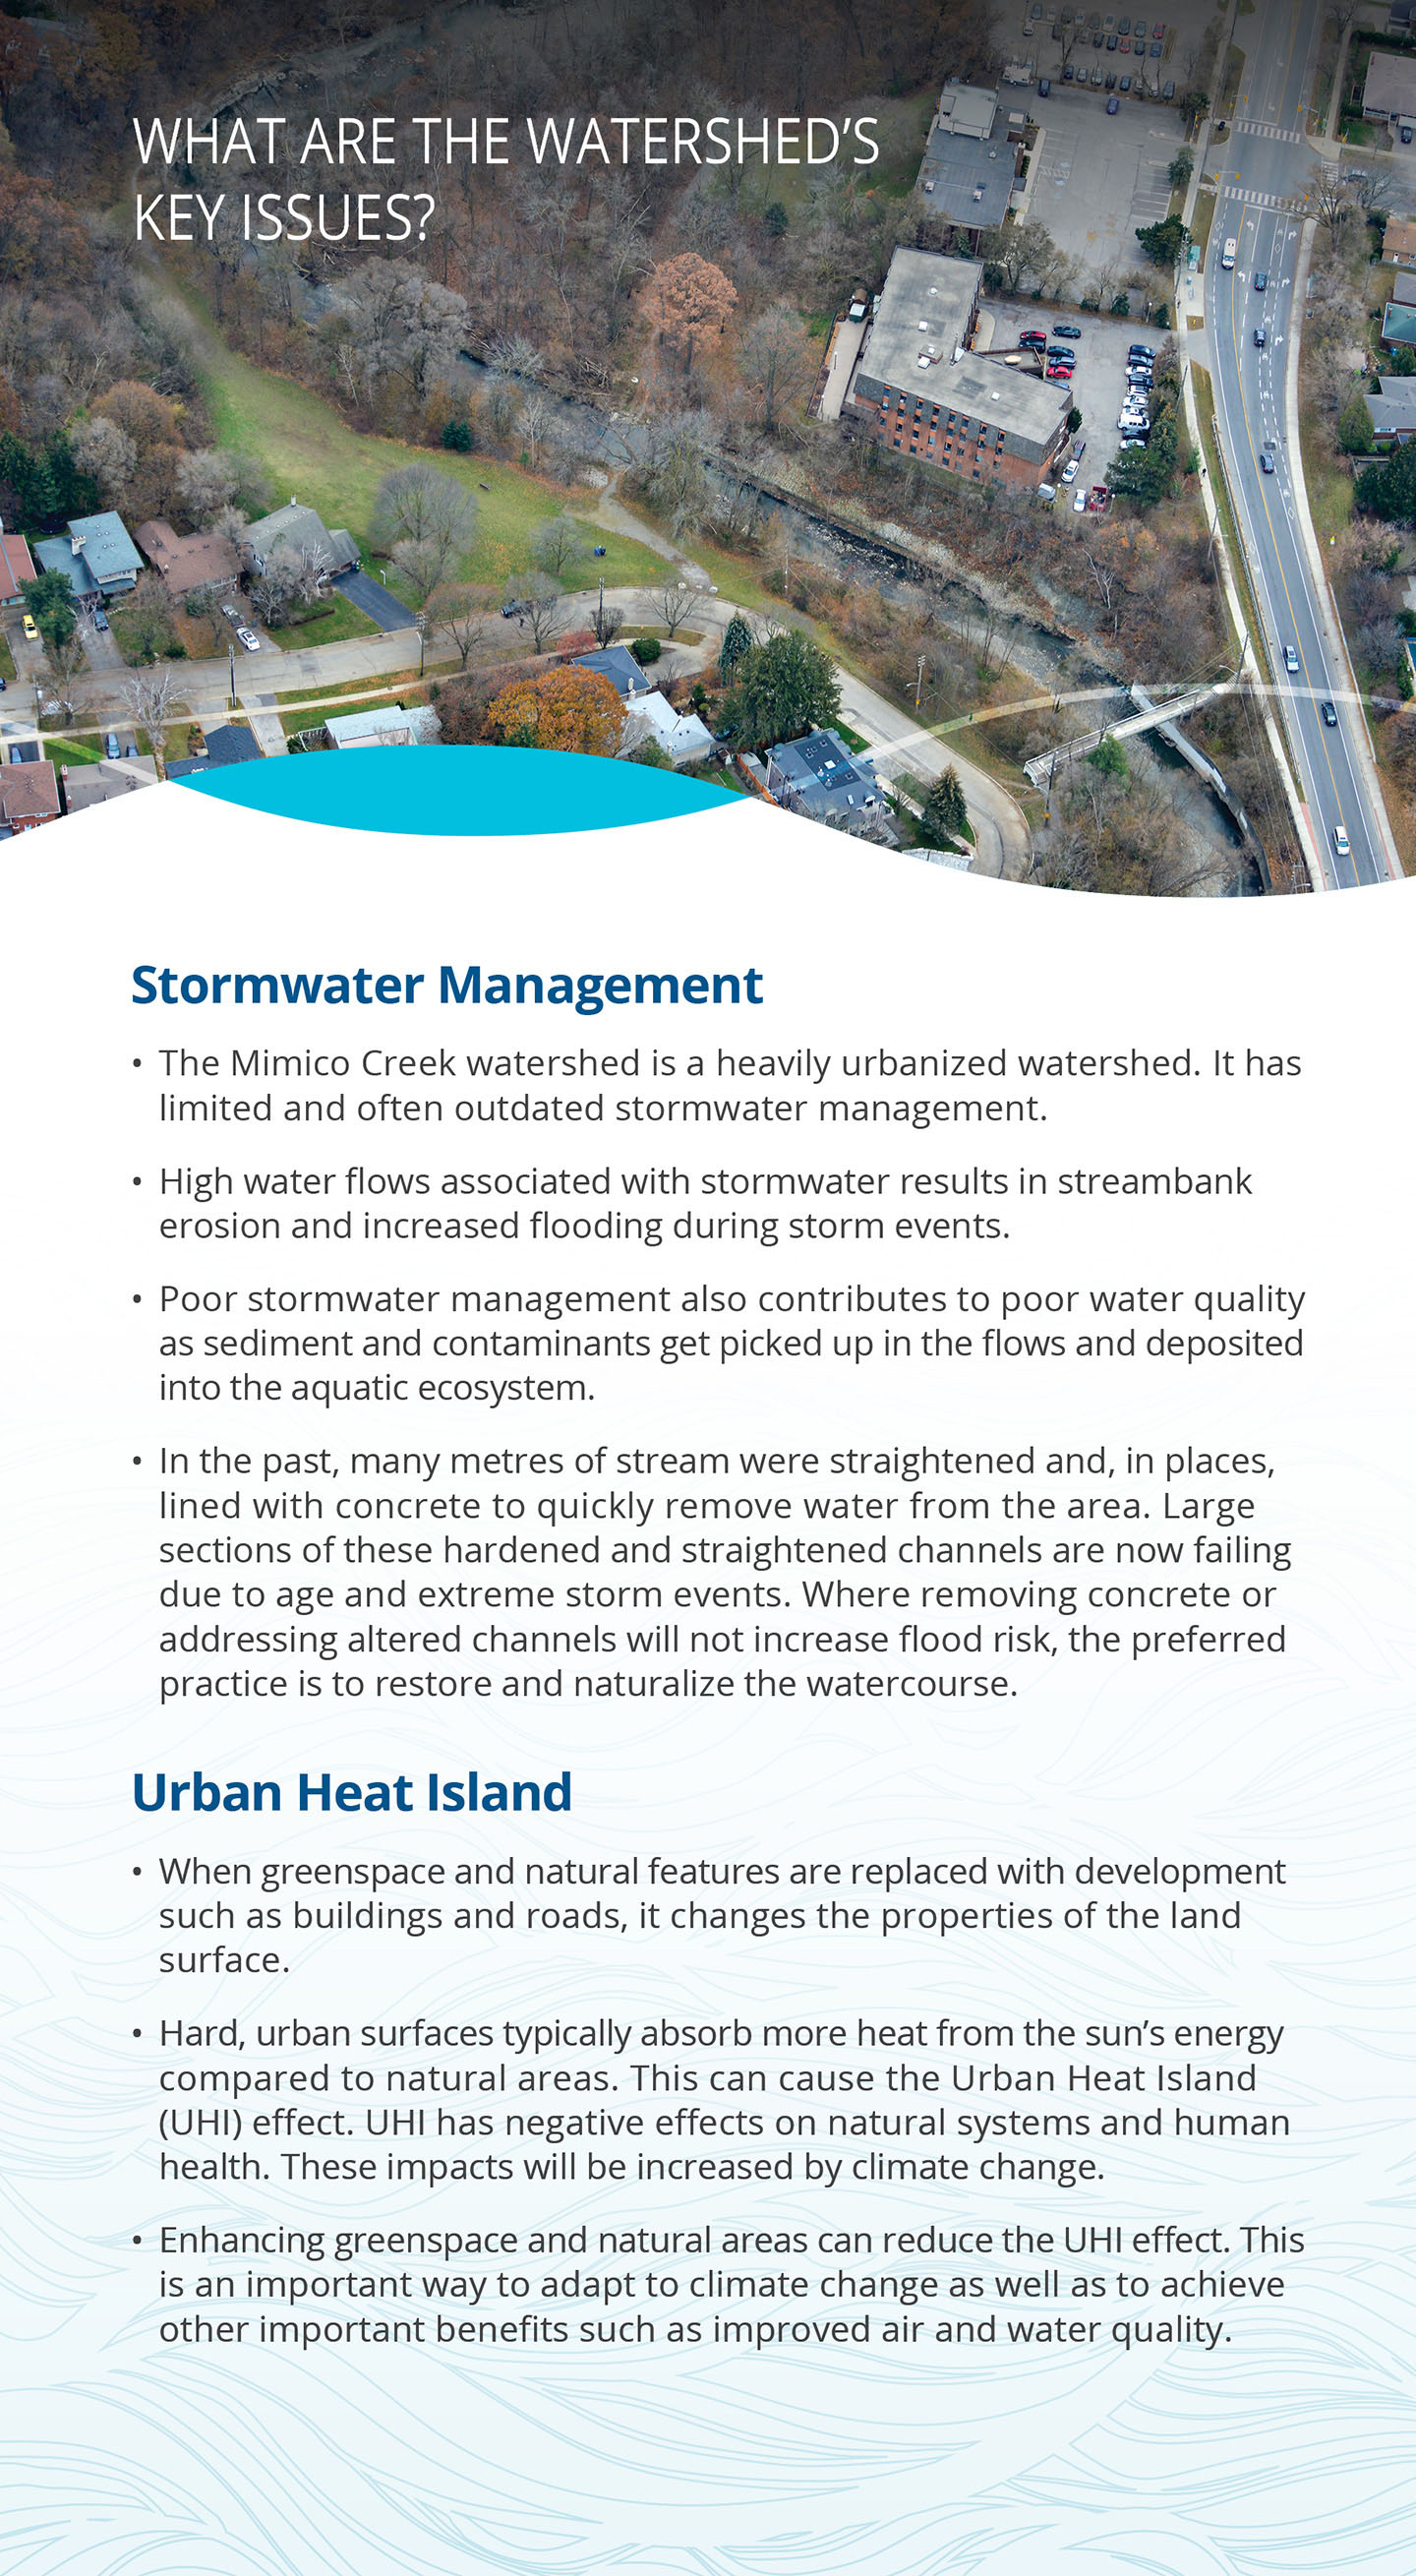 key issues panel of Mimico Creek watershed report card